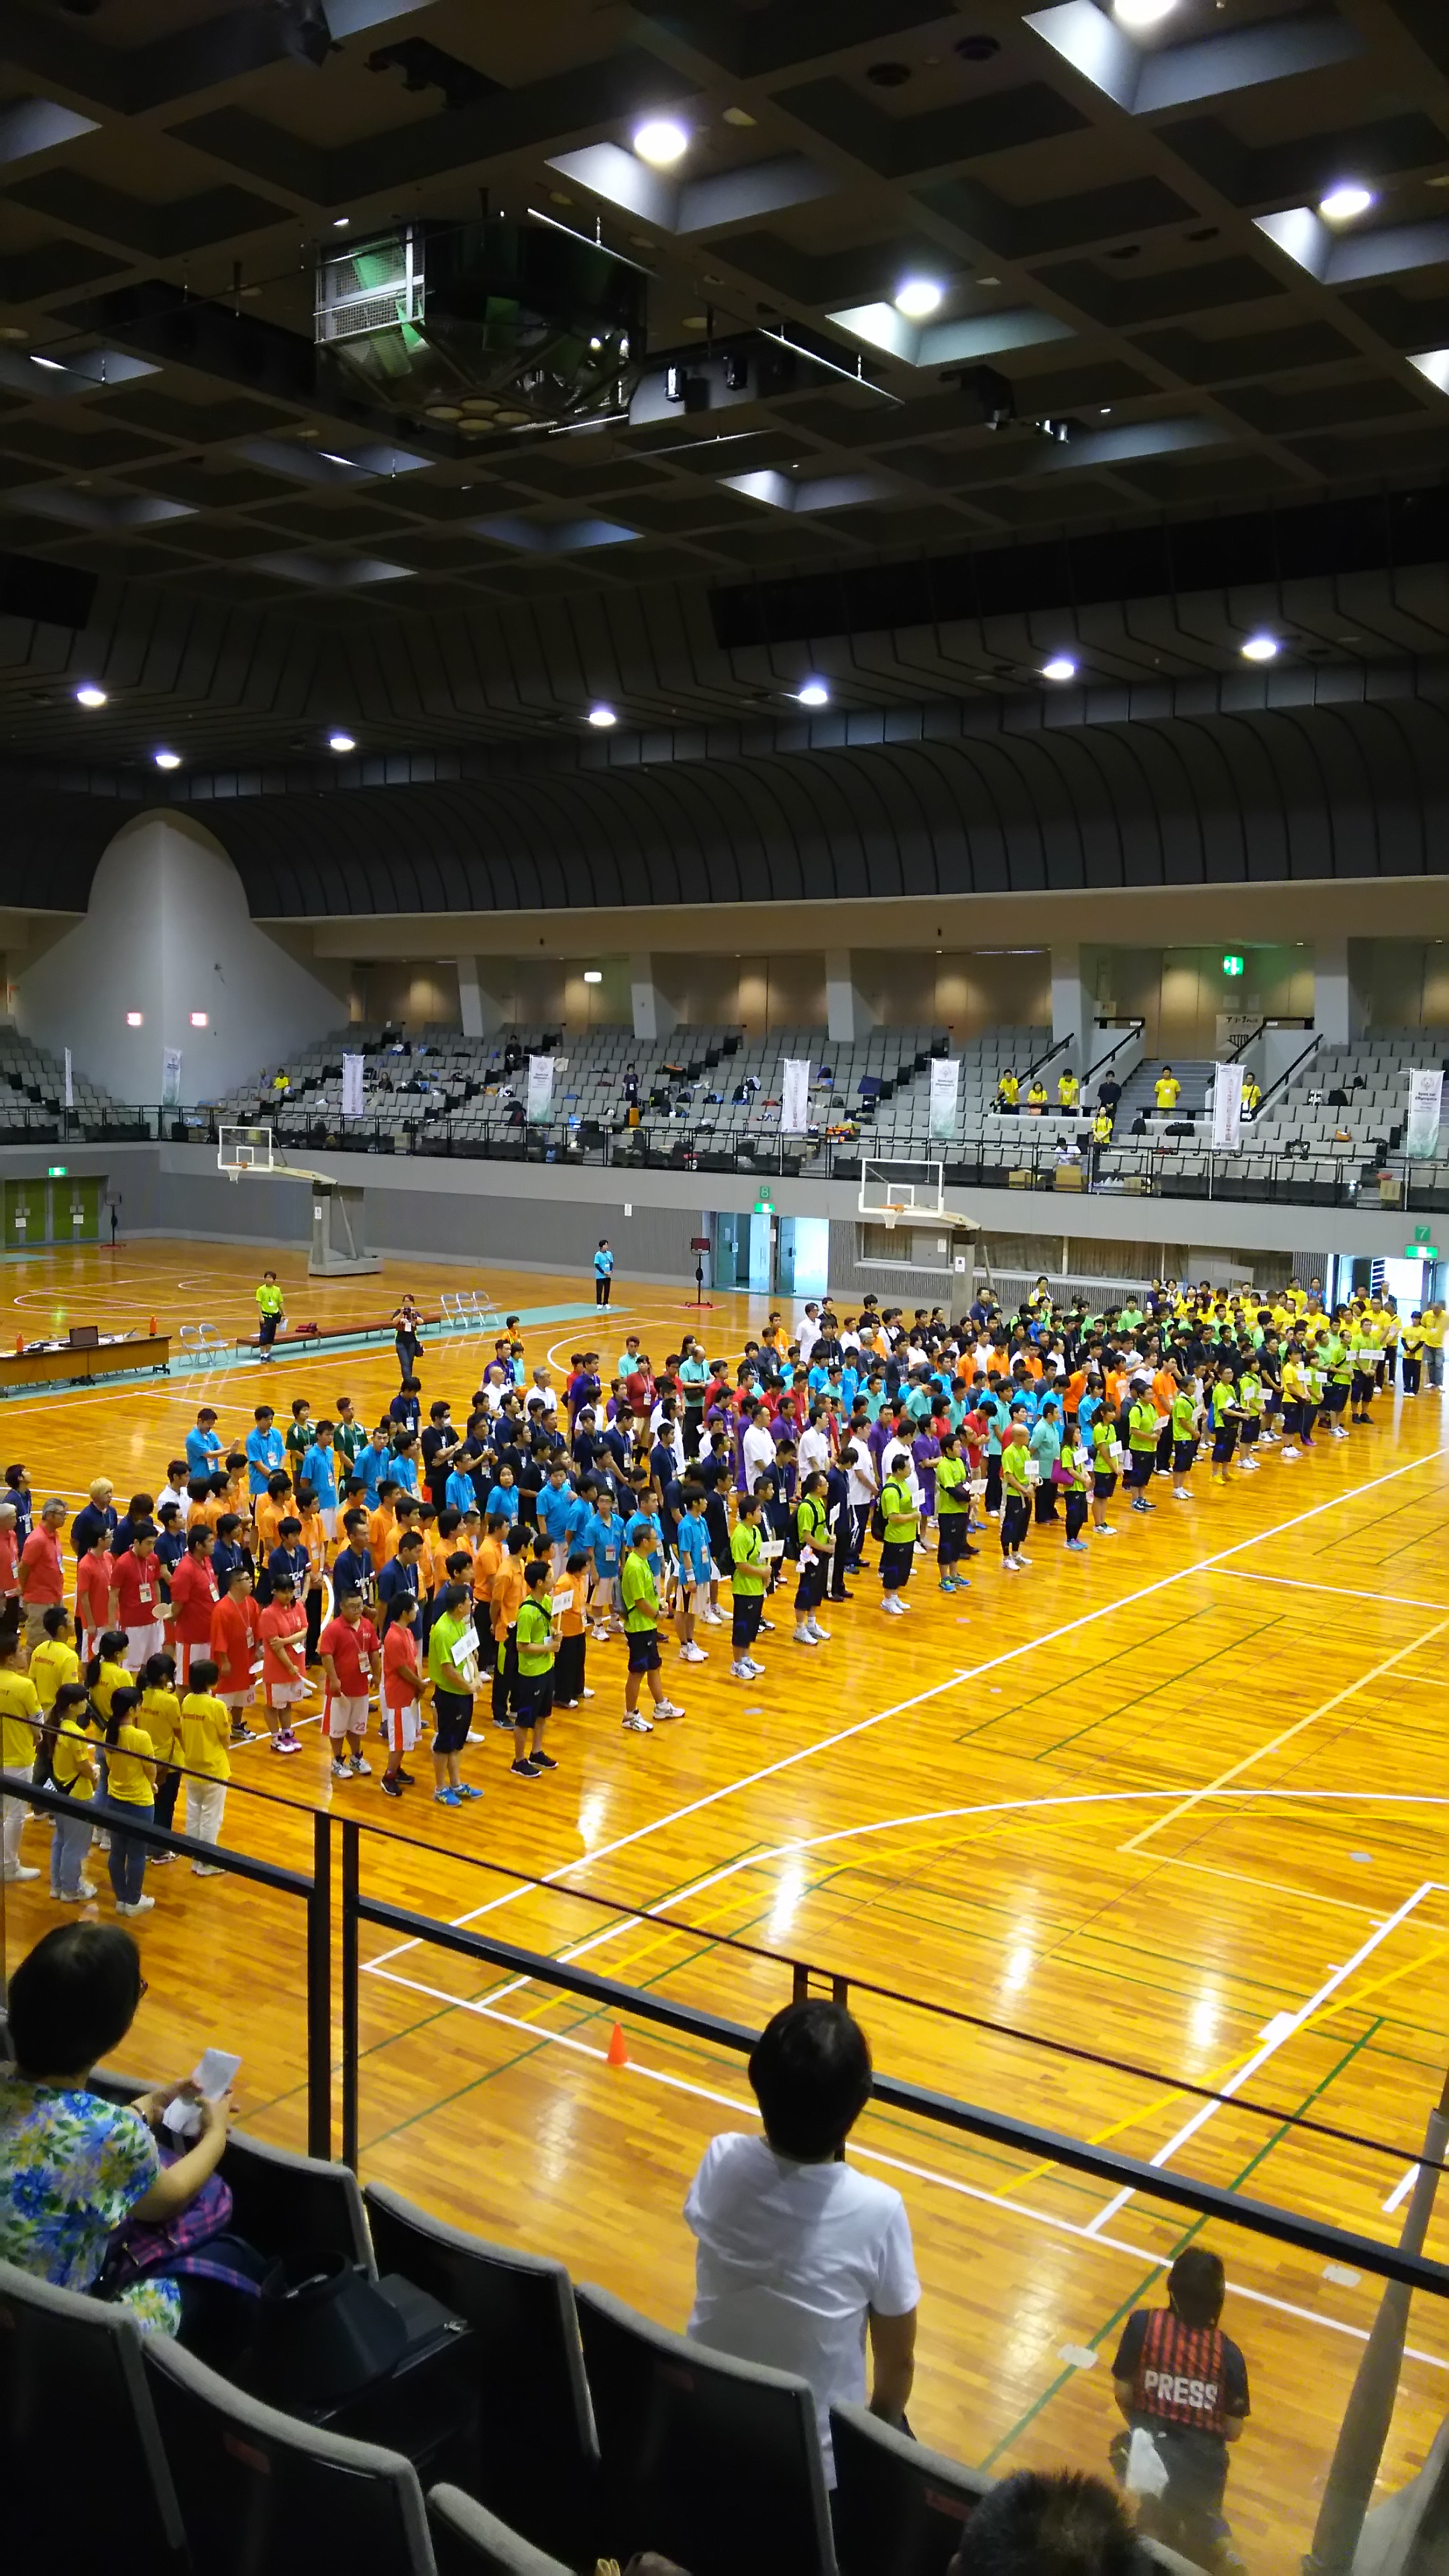 SON 2015第2回バスケ全国大会in広島2日目⑦